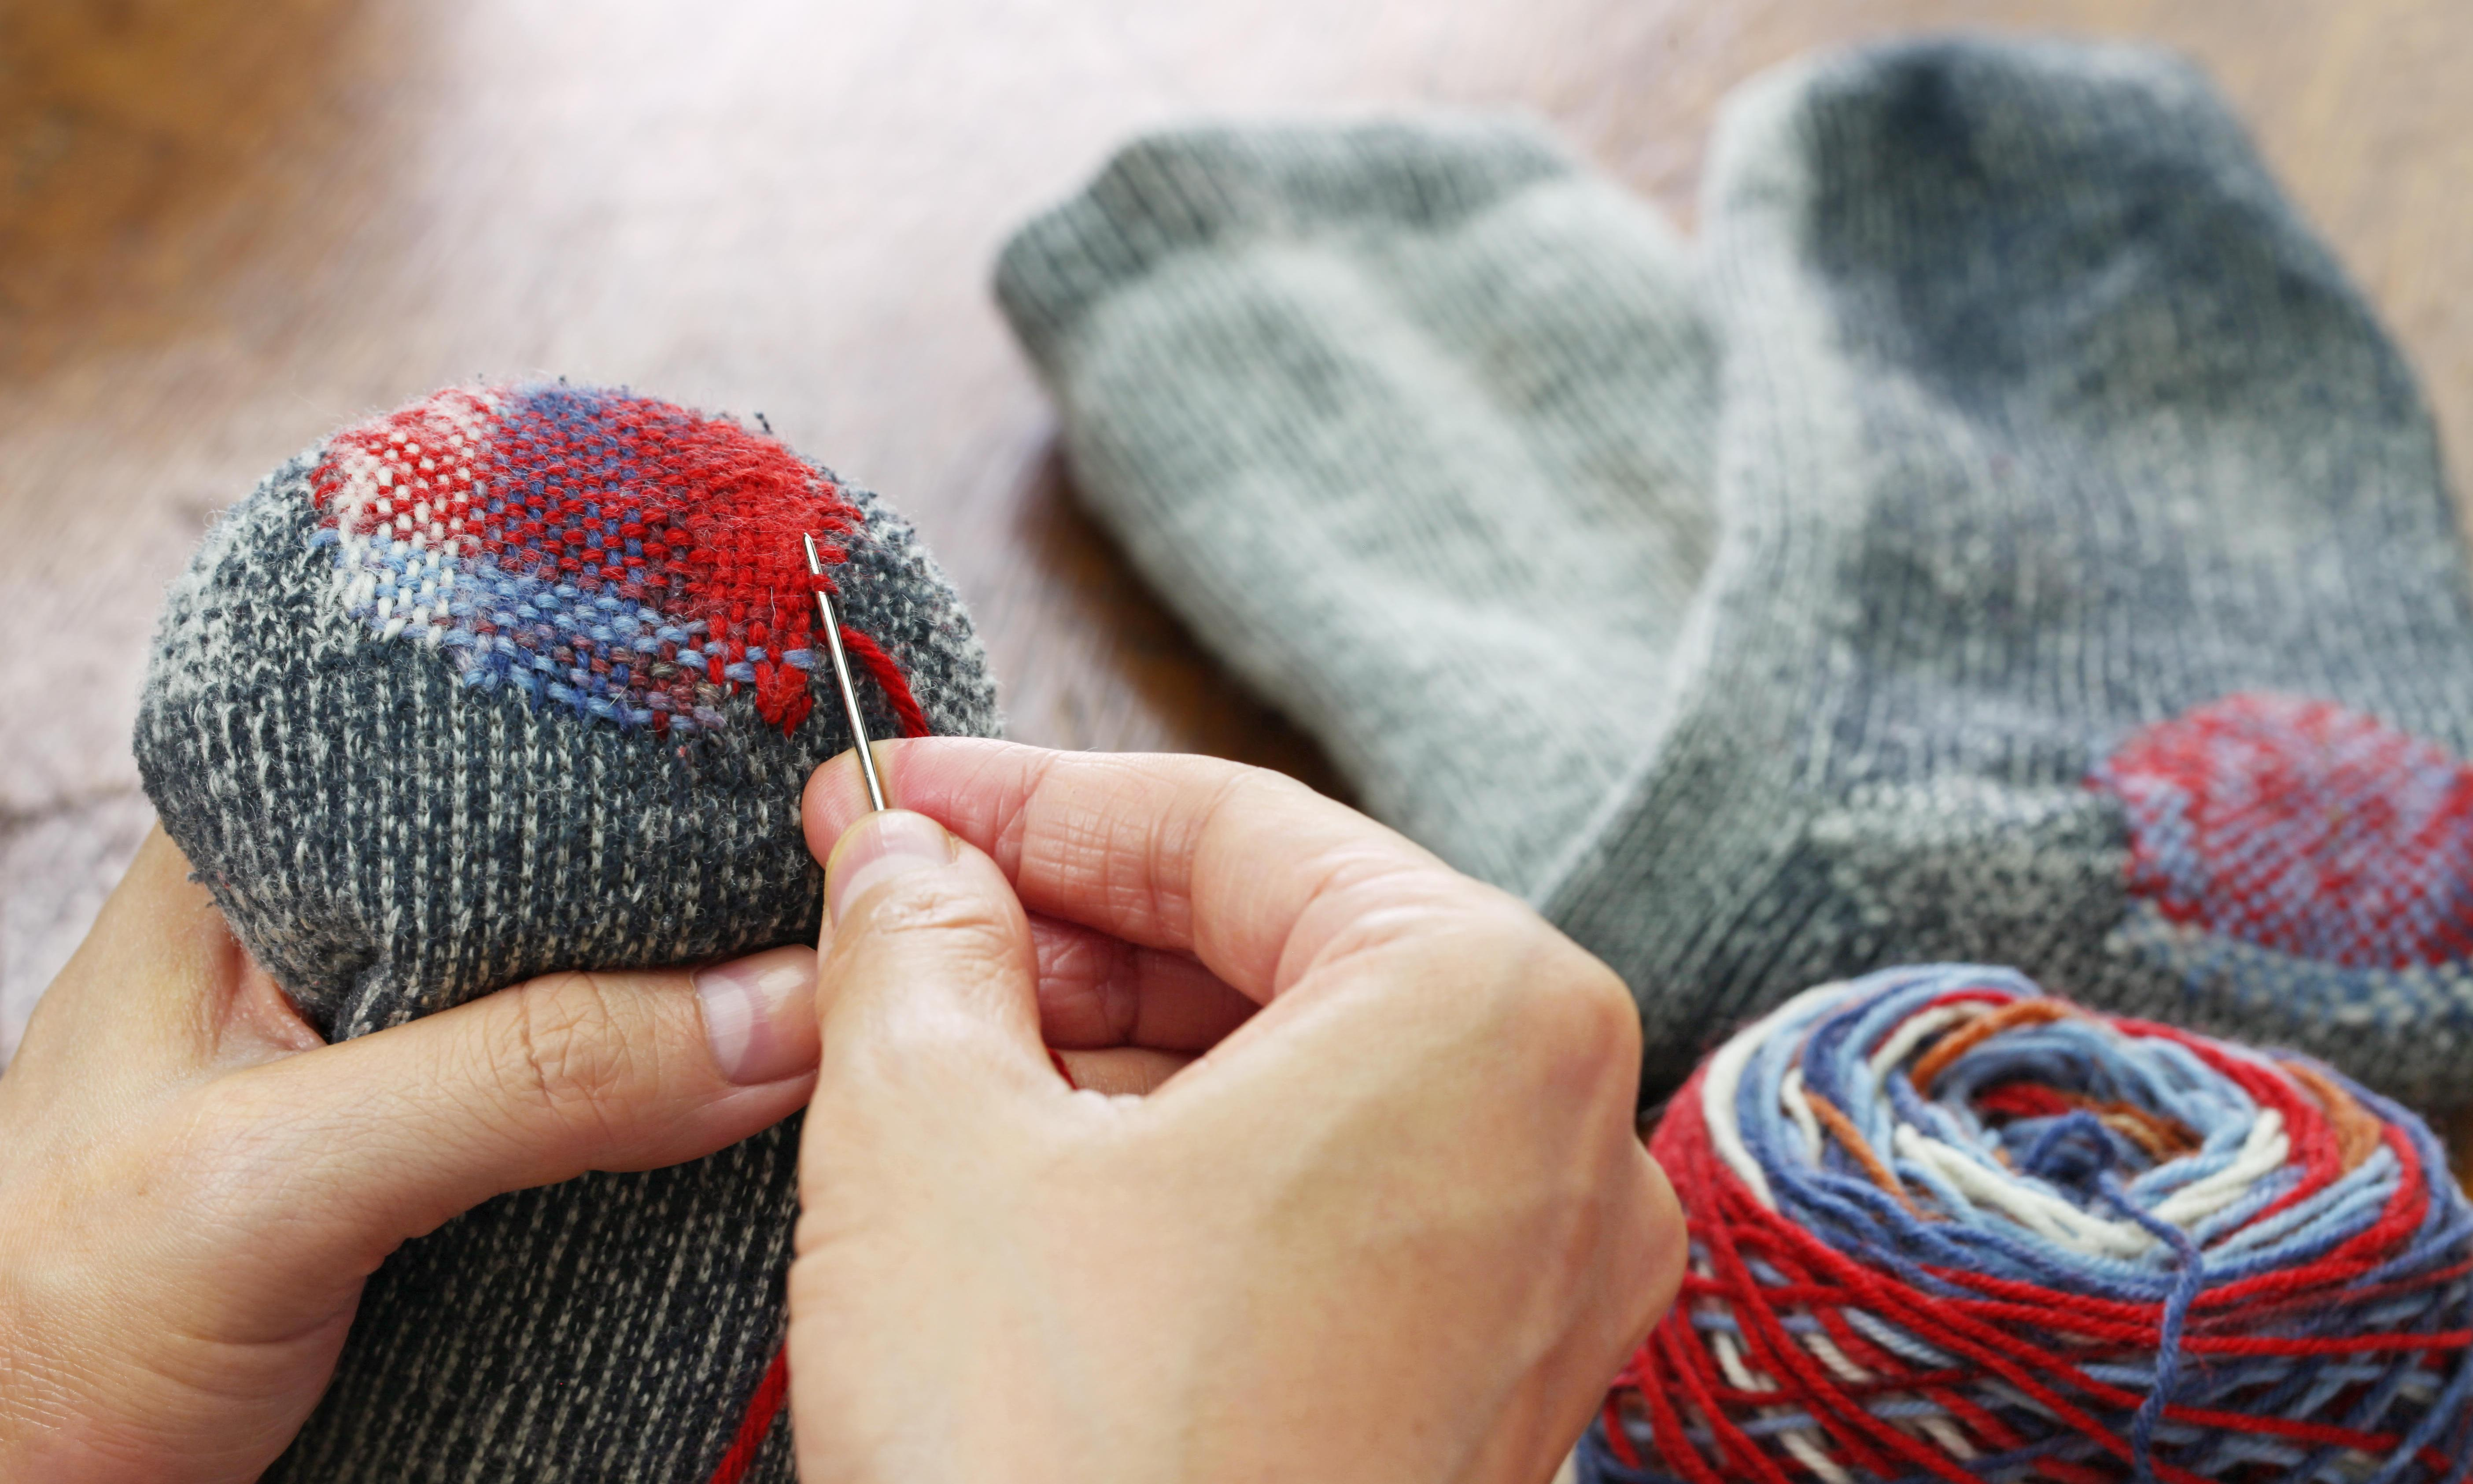 Fix up, look sharp: how to mend more and buy less